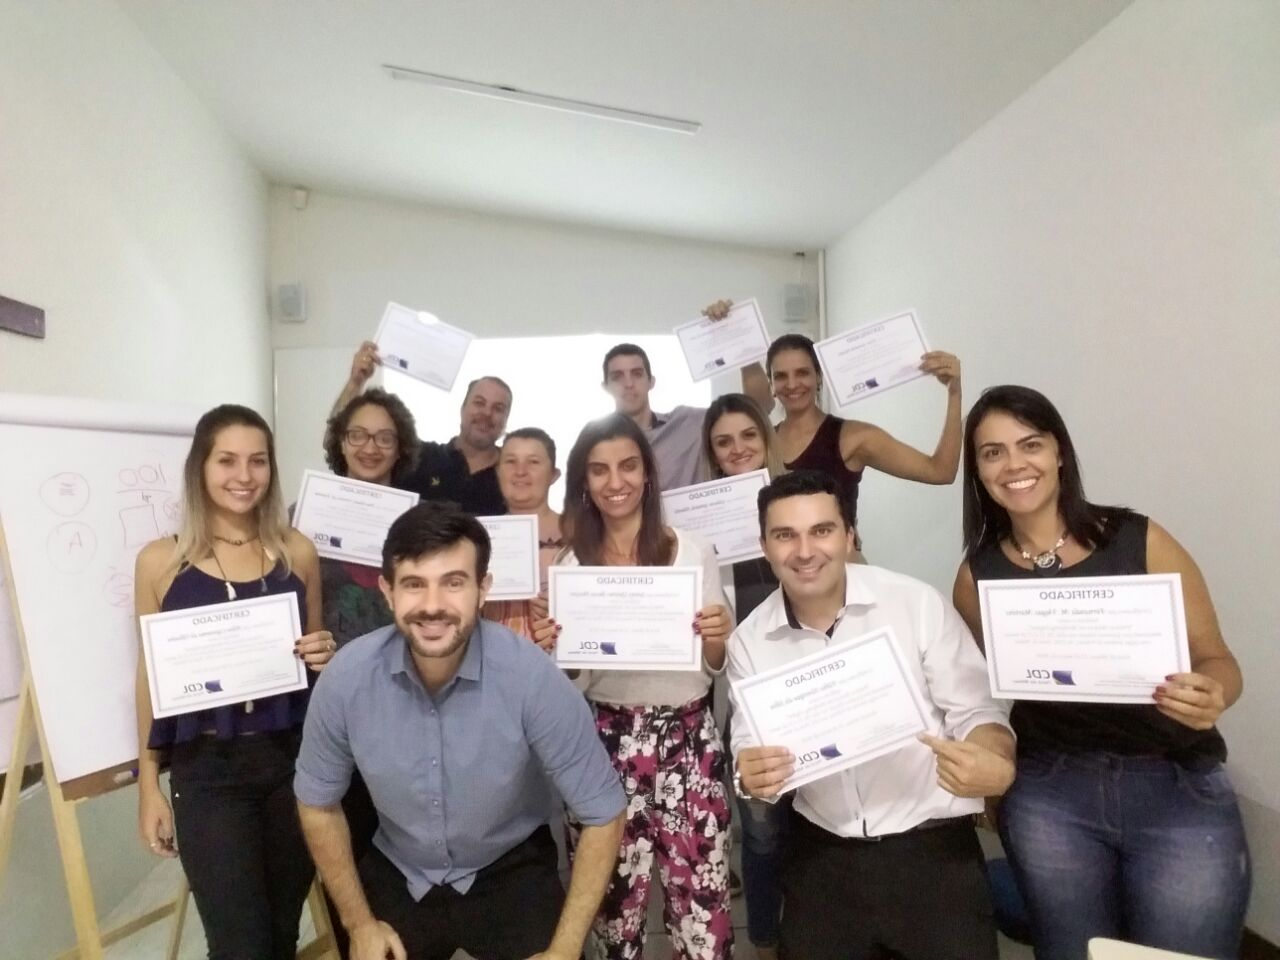 SUCESSO: CURSO MARKETING DIGITAL